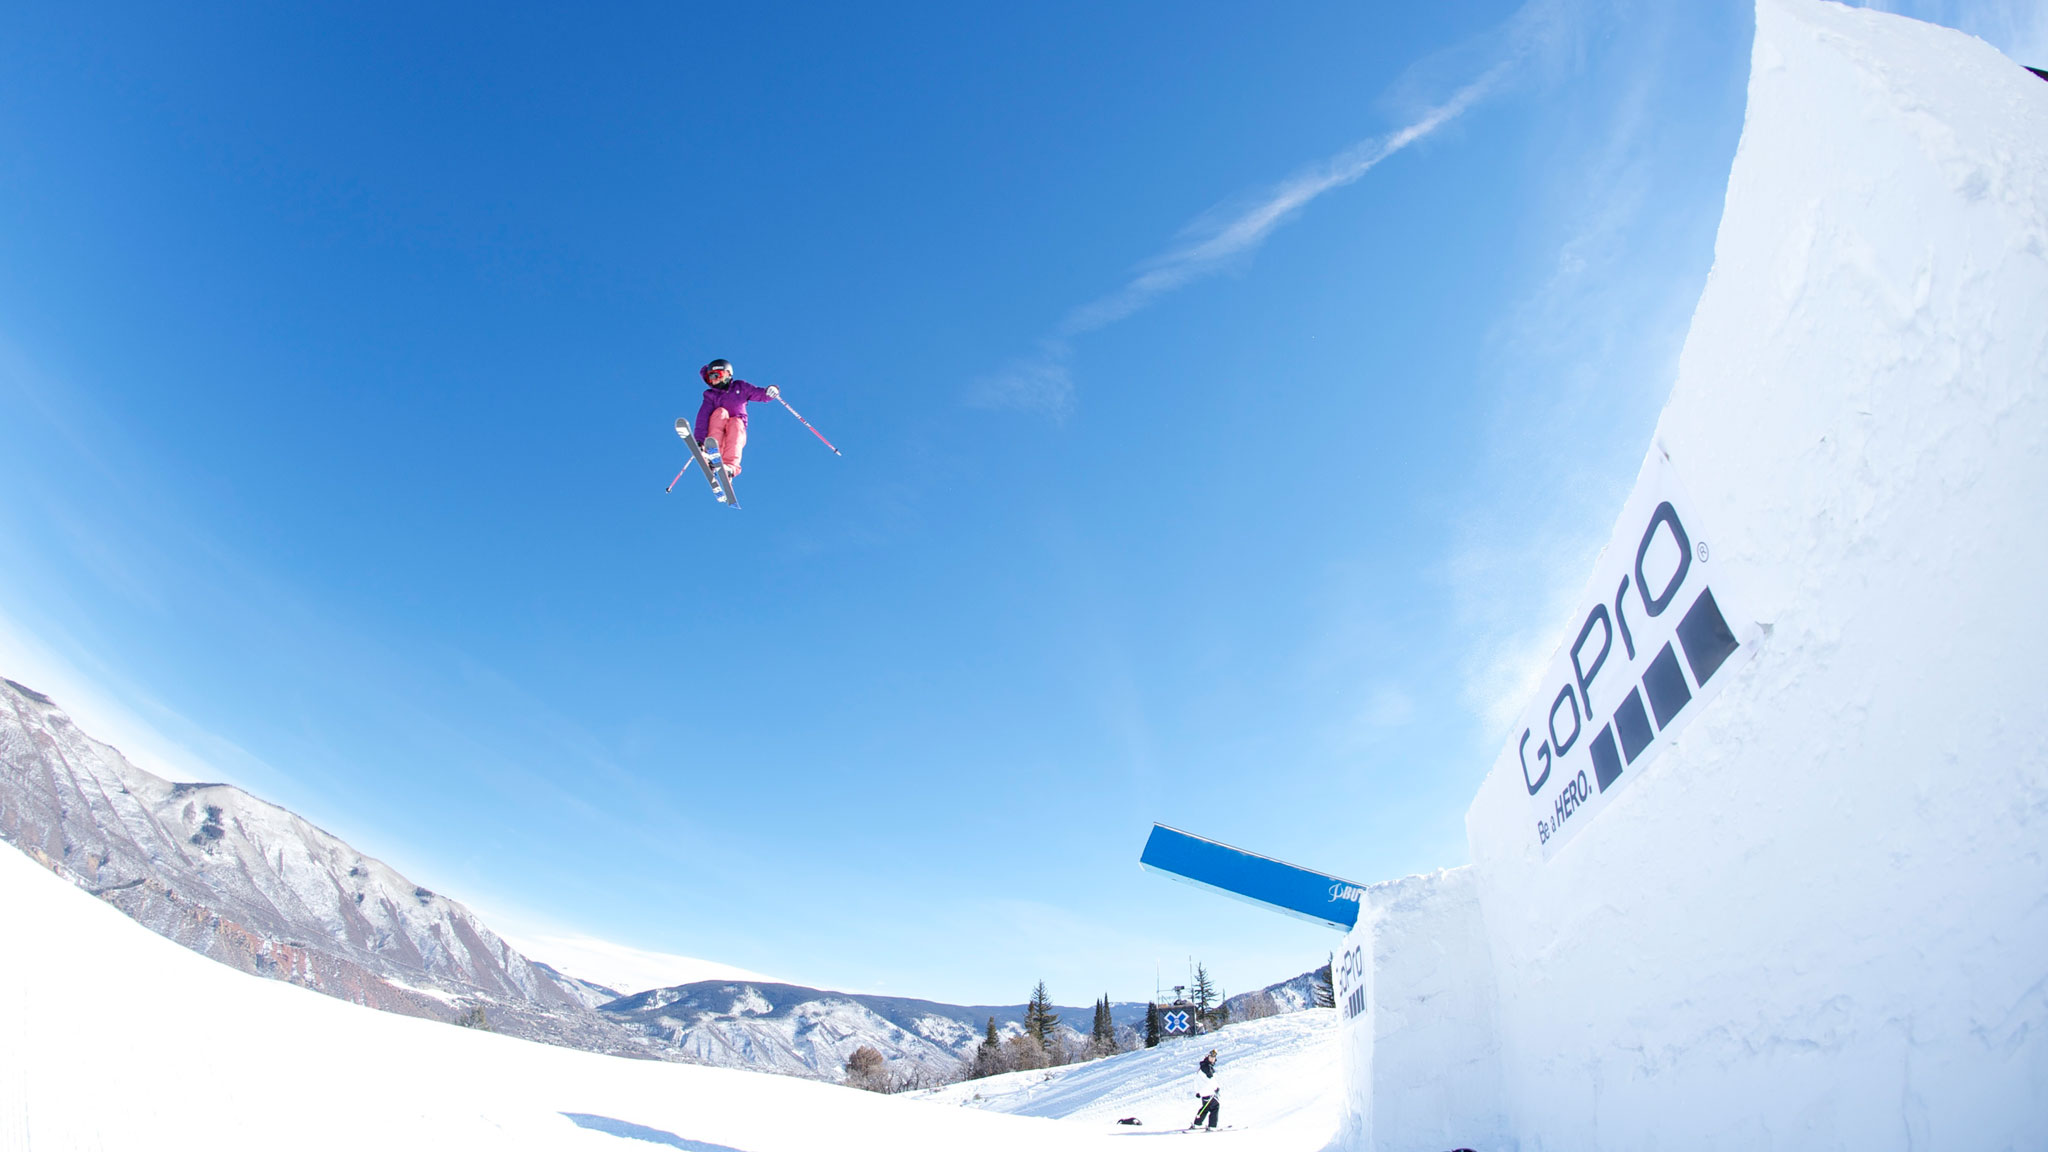 Dara Howell hasn't claimed an X Games victory yet, but she does have an Olympic gold medal.